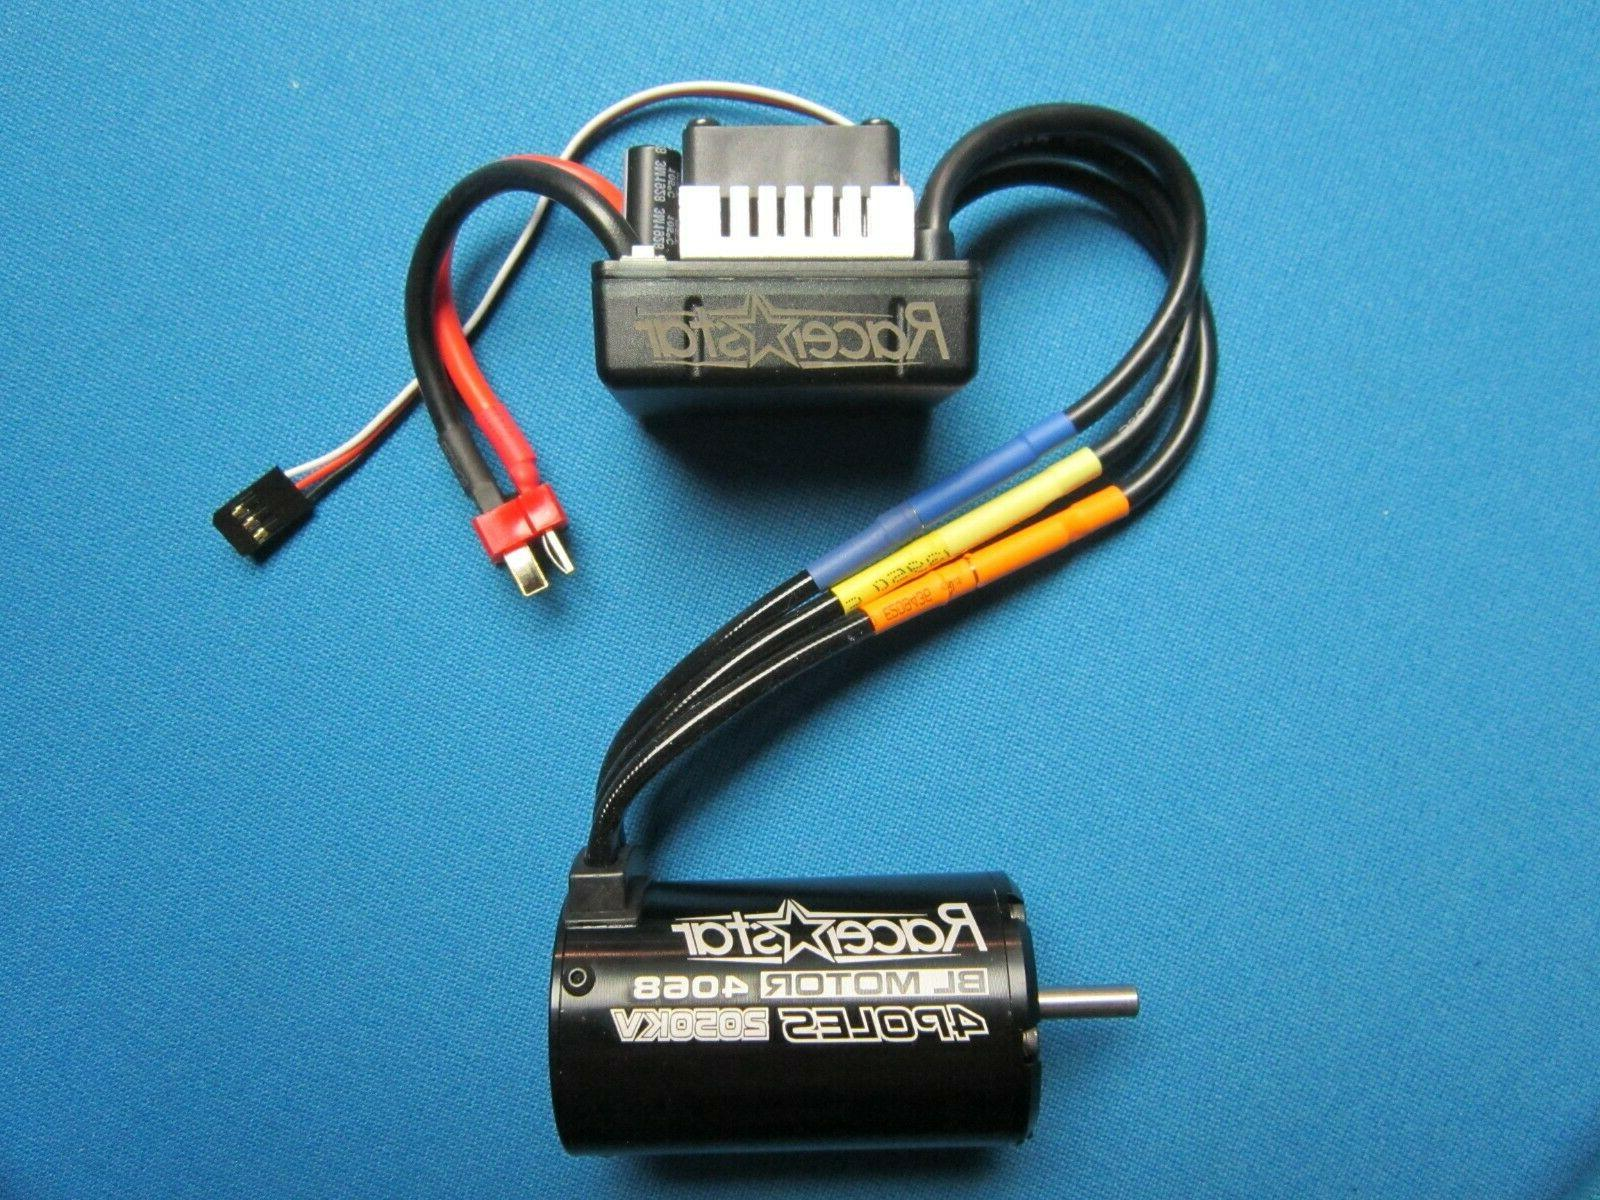 120a esc and 4068 brushless motor combo